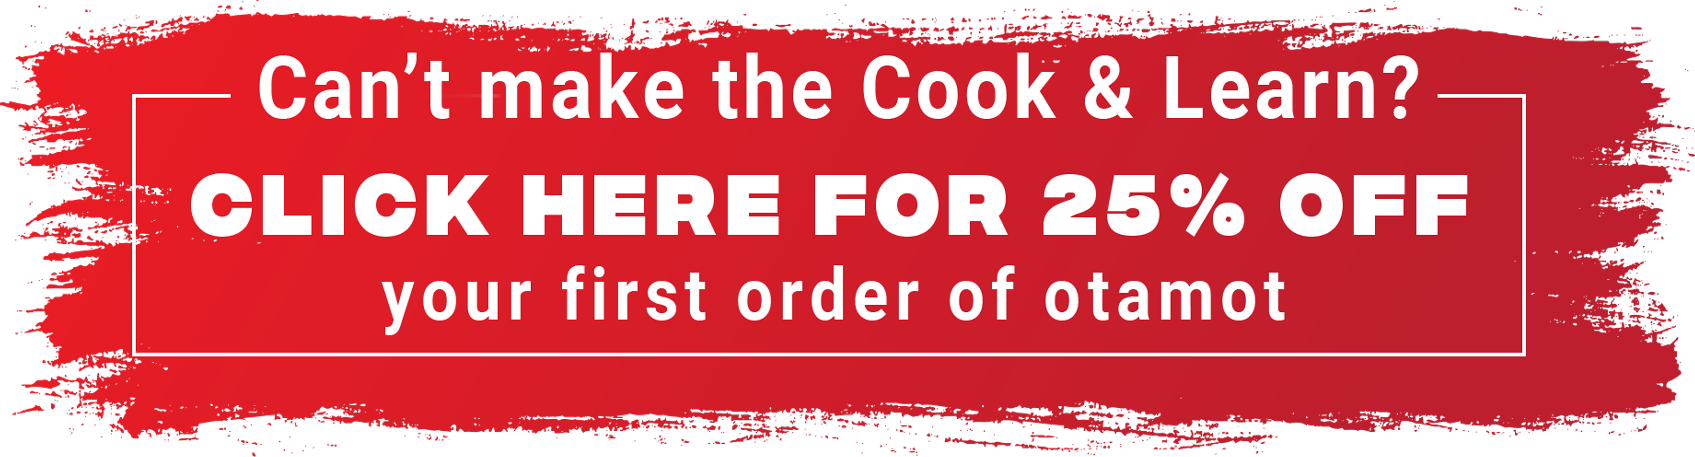 Click here for 25% ff your first order of otamot